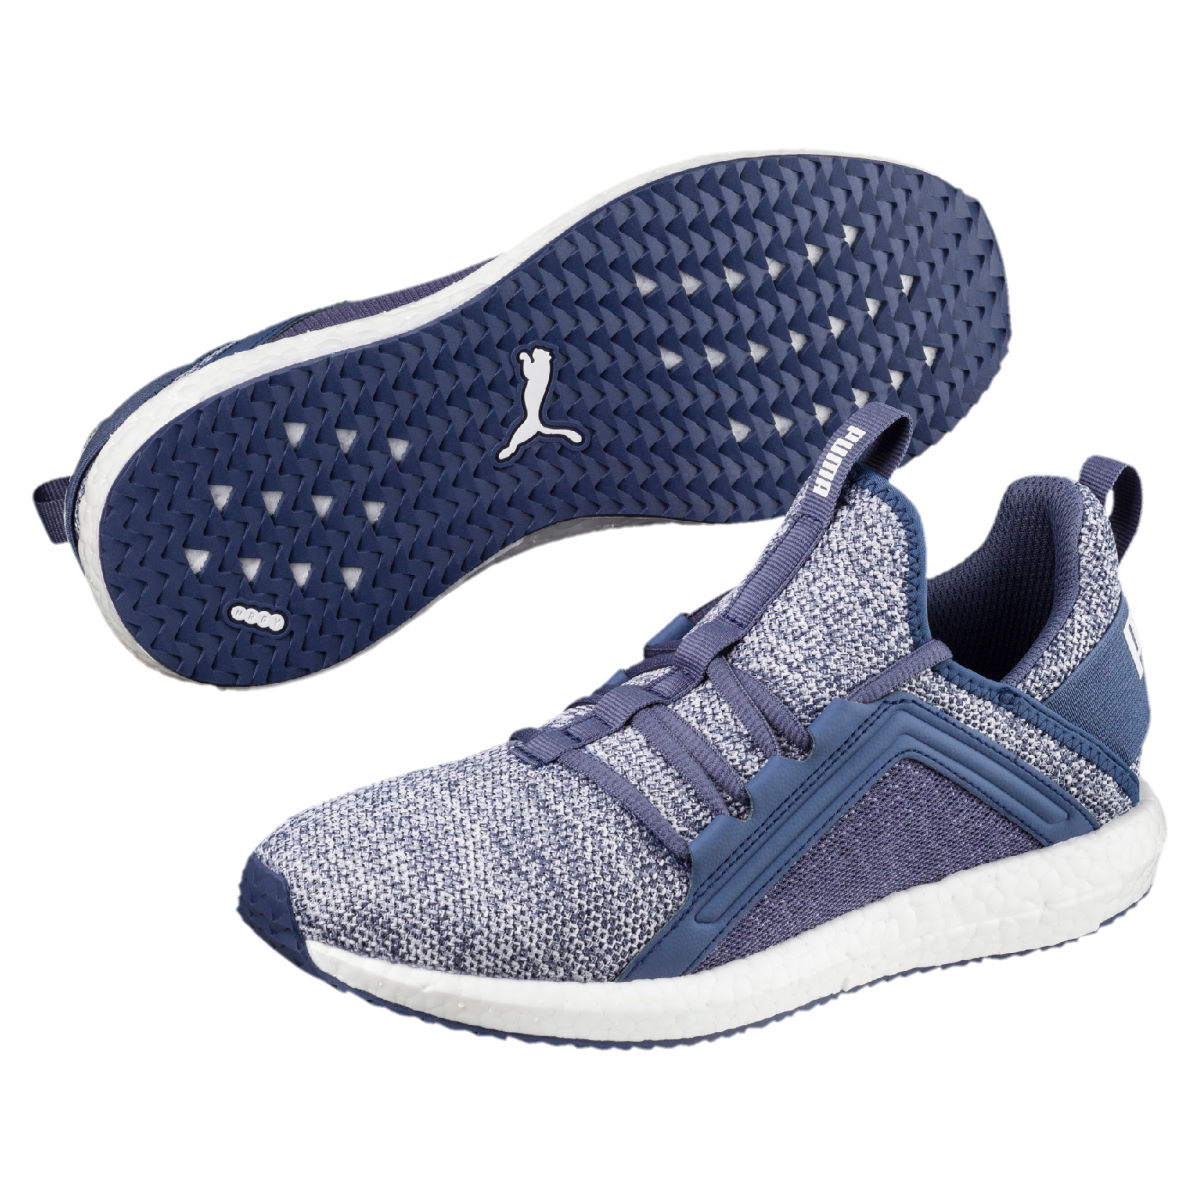 Chaussures Femme Puma Mega NRGY Knit - UK 7 blue indigo/white